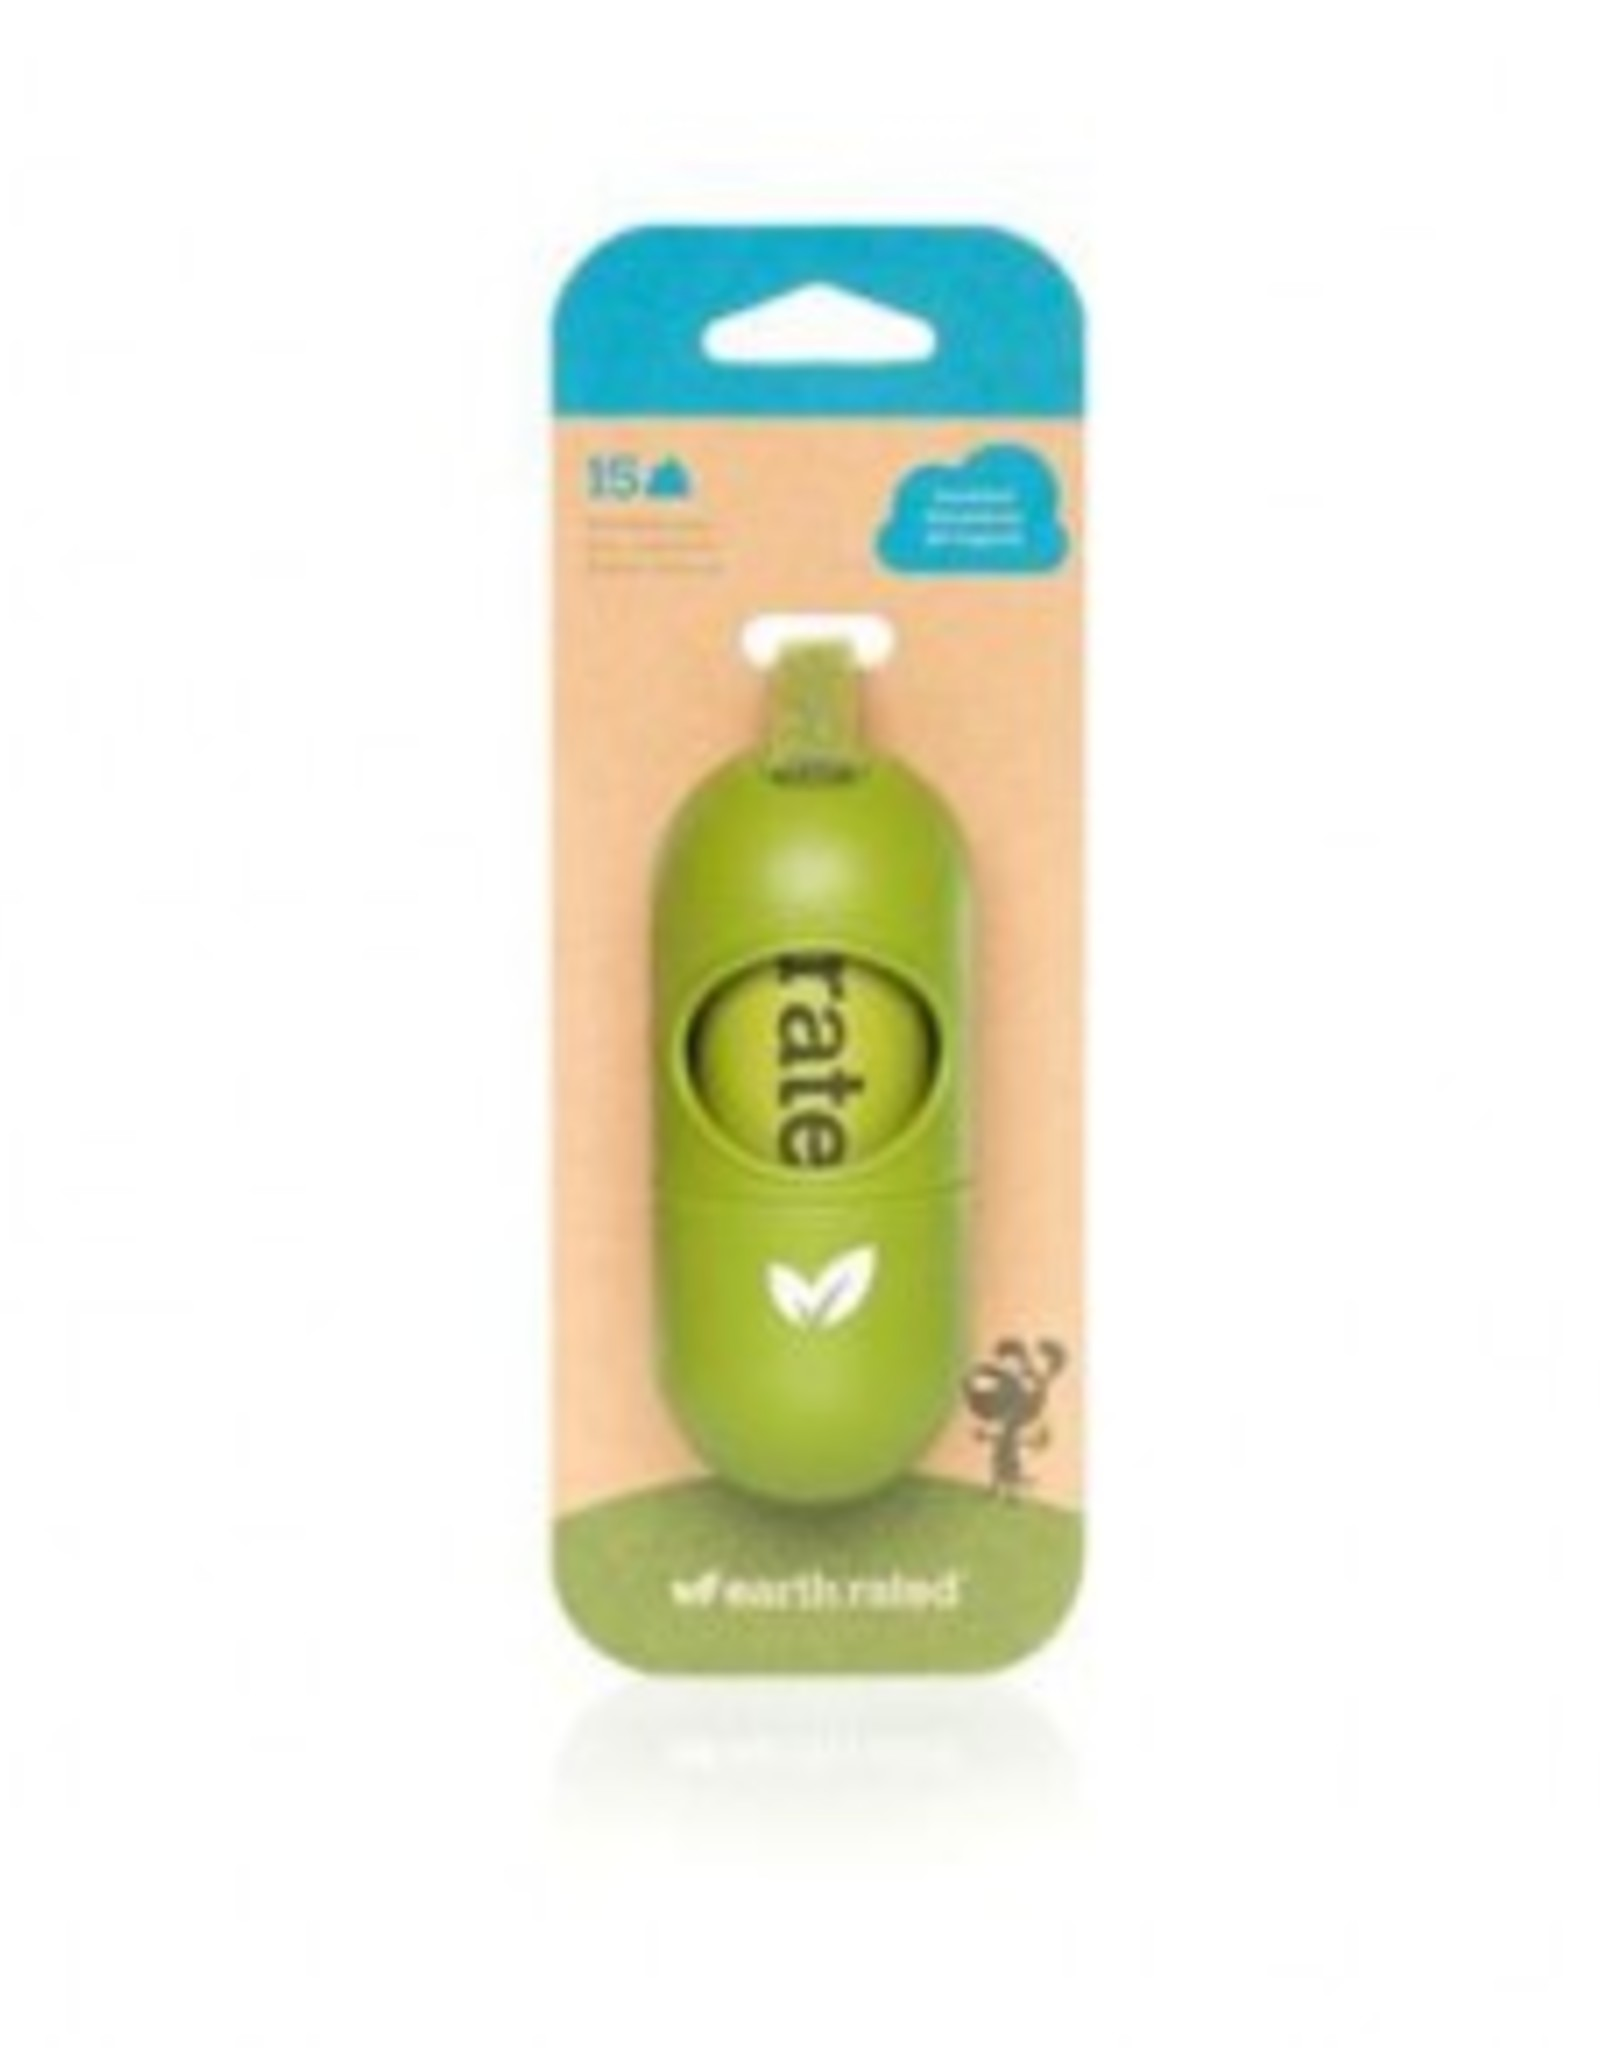 Earth Rated Earth Rated 15 Poopbags Dispenser Unscented